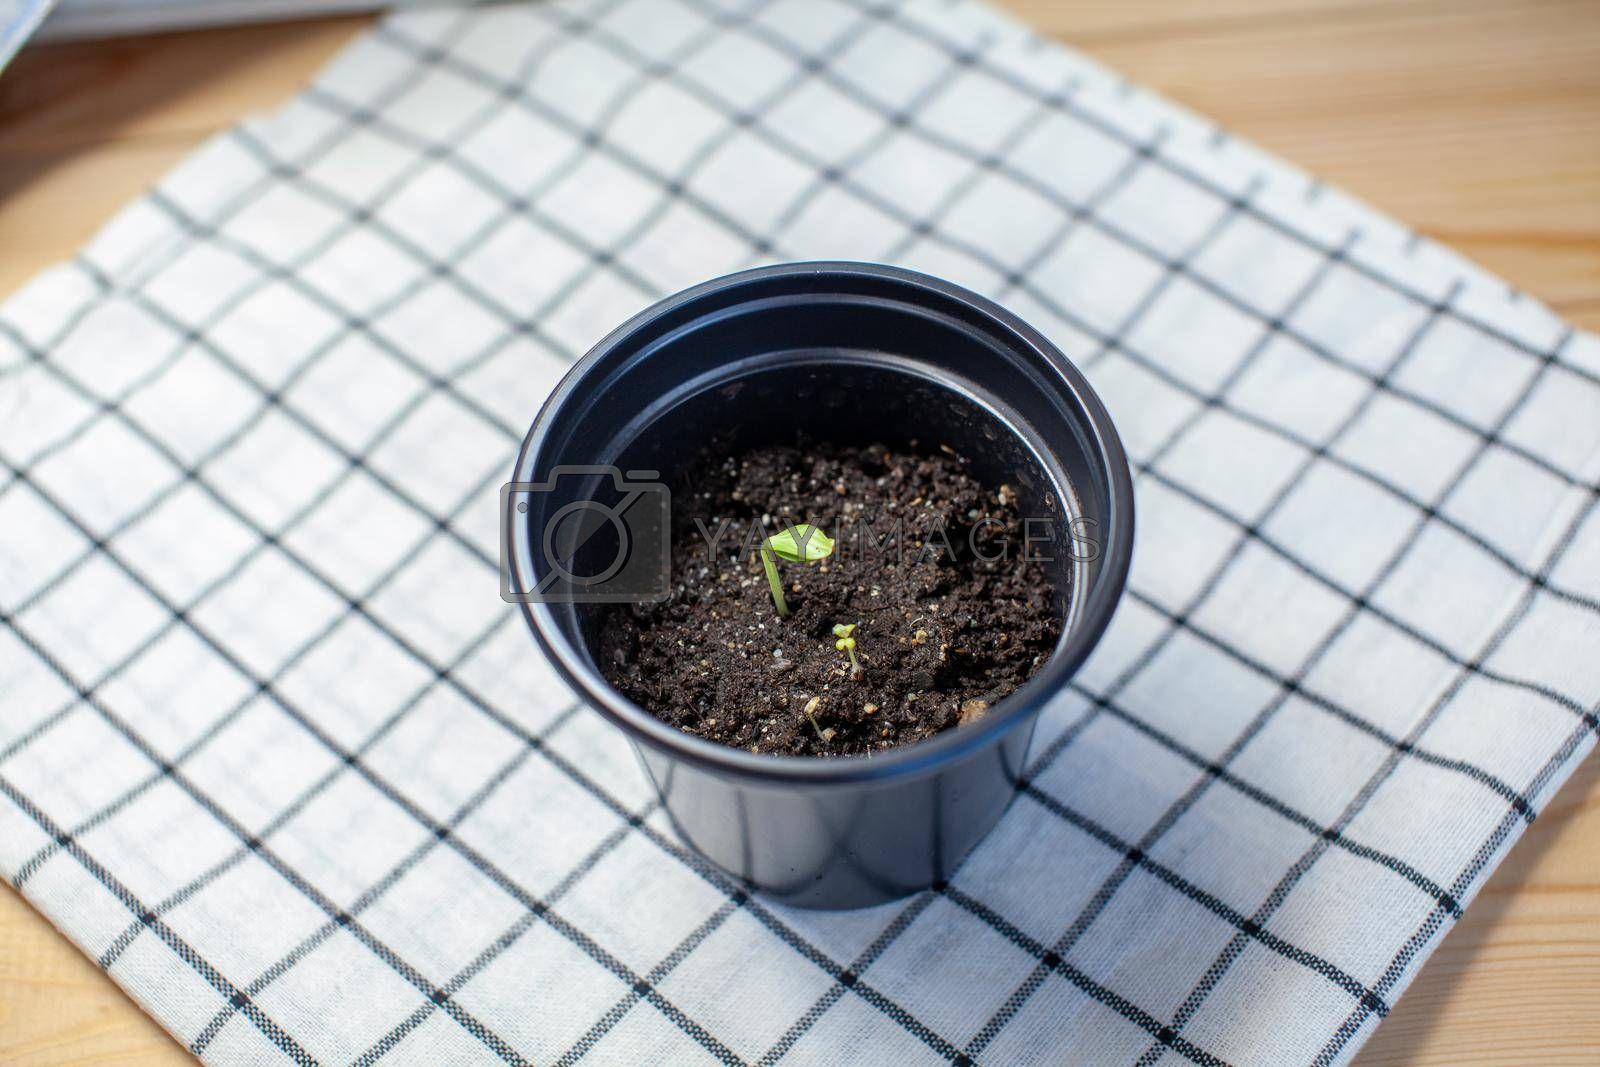 Planting young seedlings in a black pot on a beautiful napkin on the table. A young sprout of a cucumber plant.